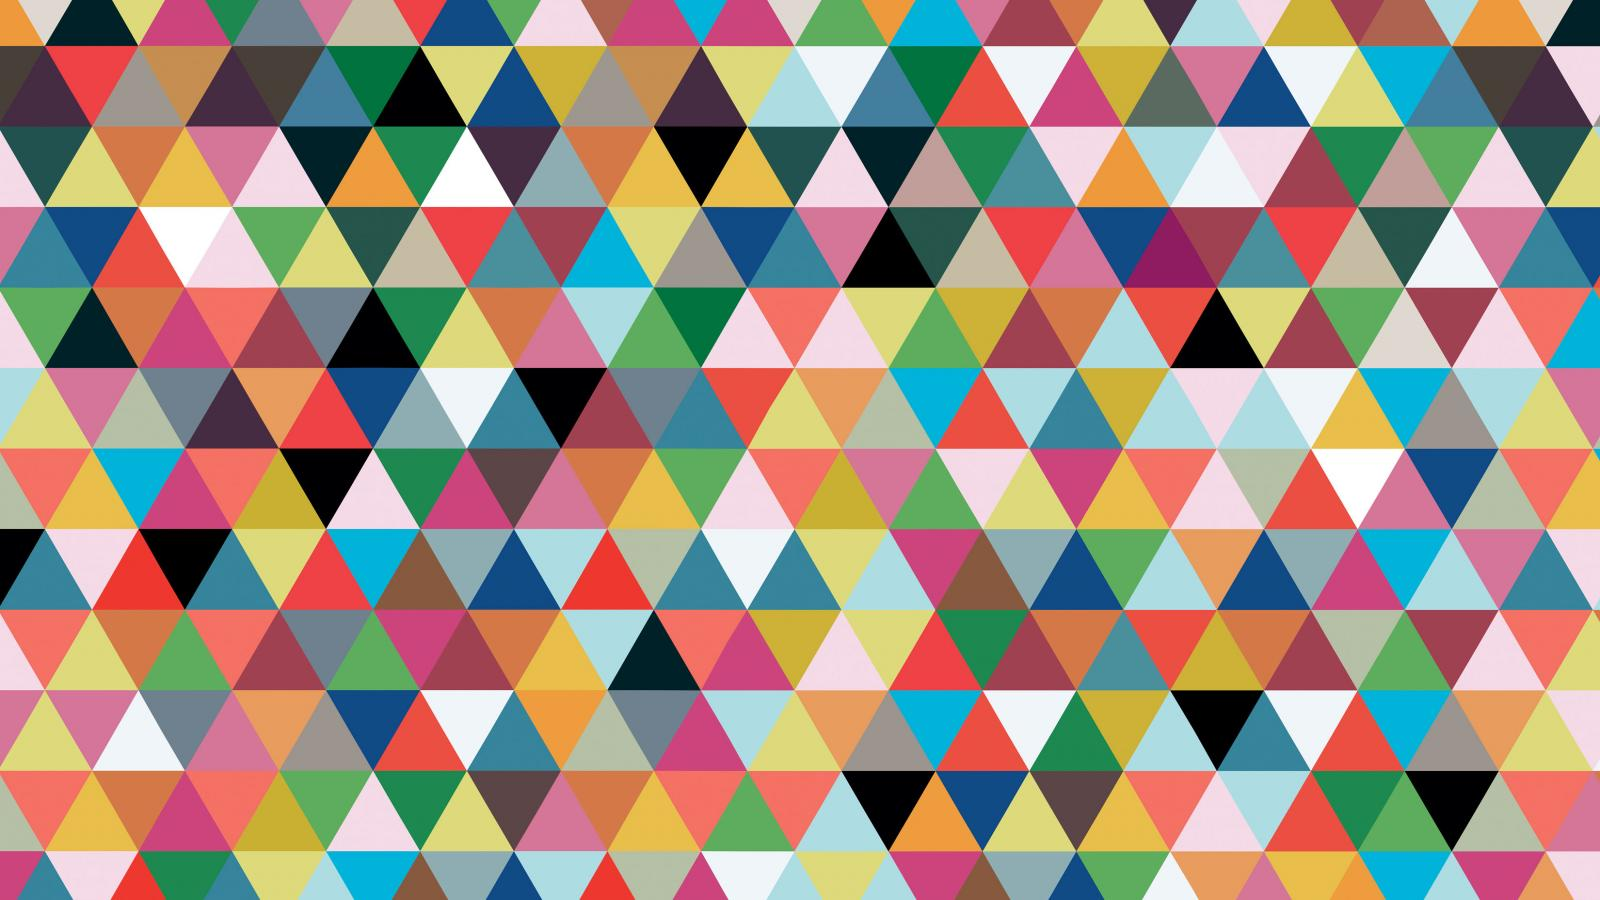 Free Colorful Hipster Wallpaper For Laptop Backgrounds